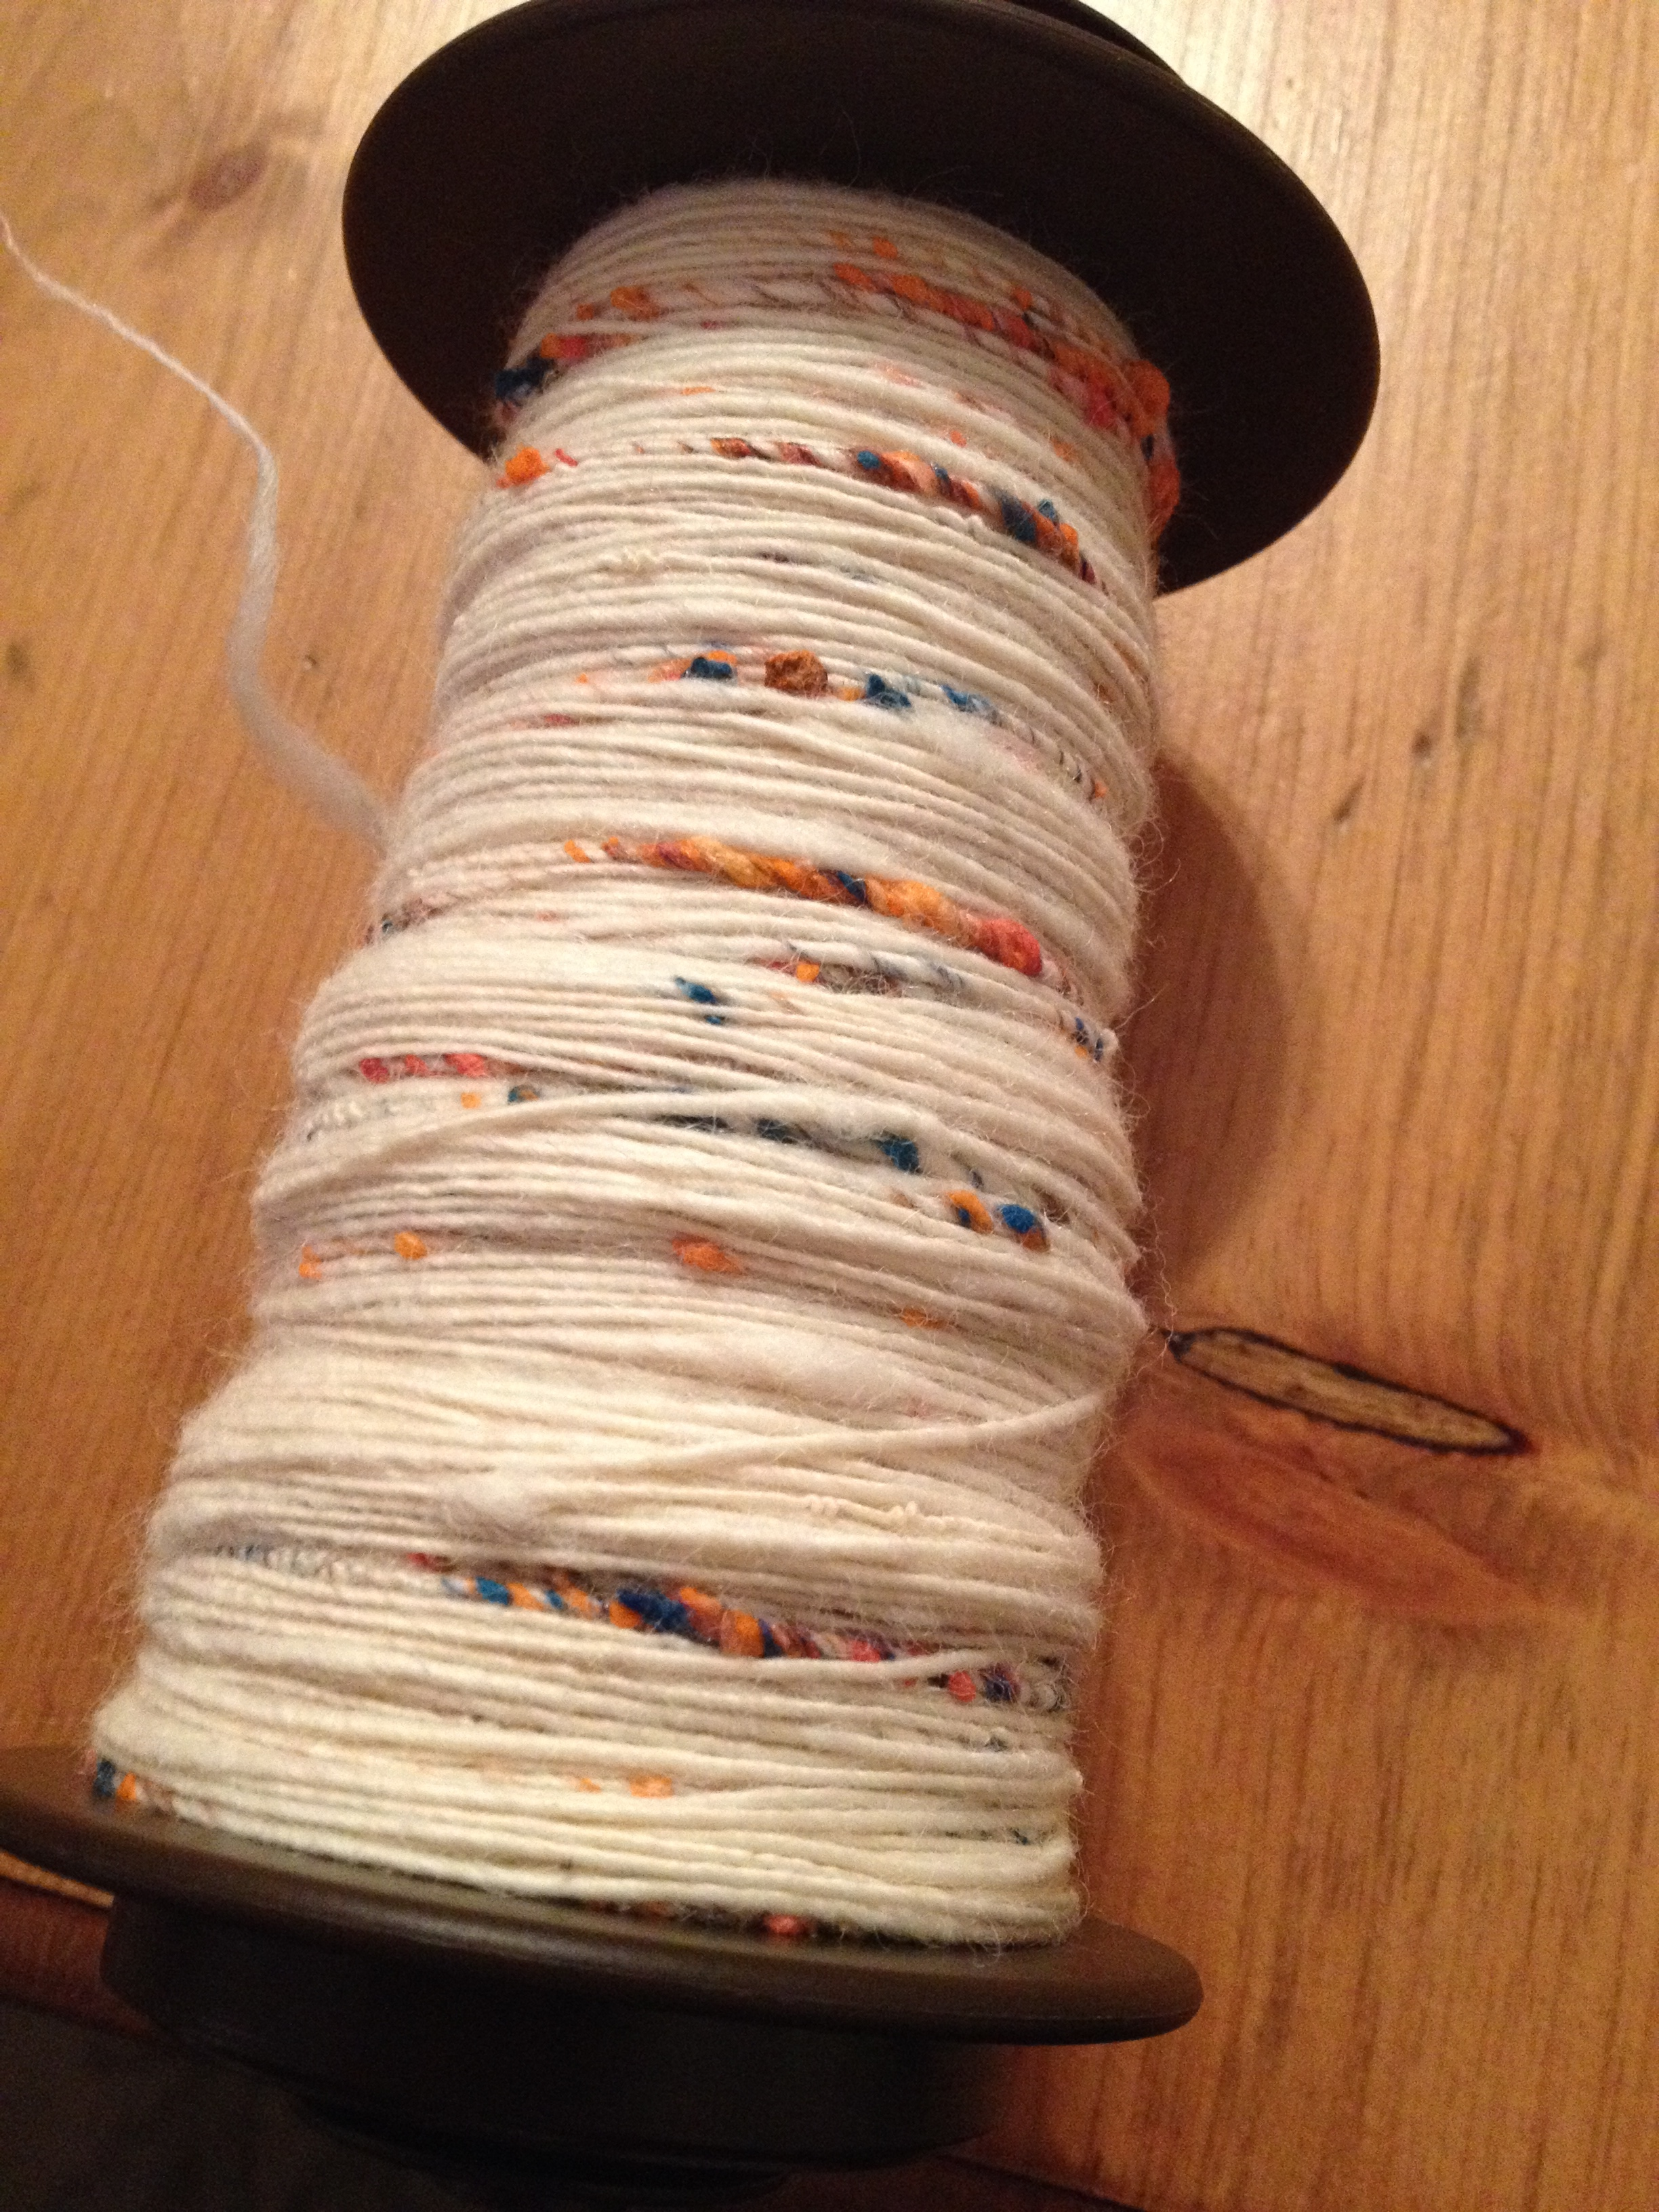 Day 5 - I finished the Sprinkle Yarn, and let it sit overnight before plying.